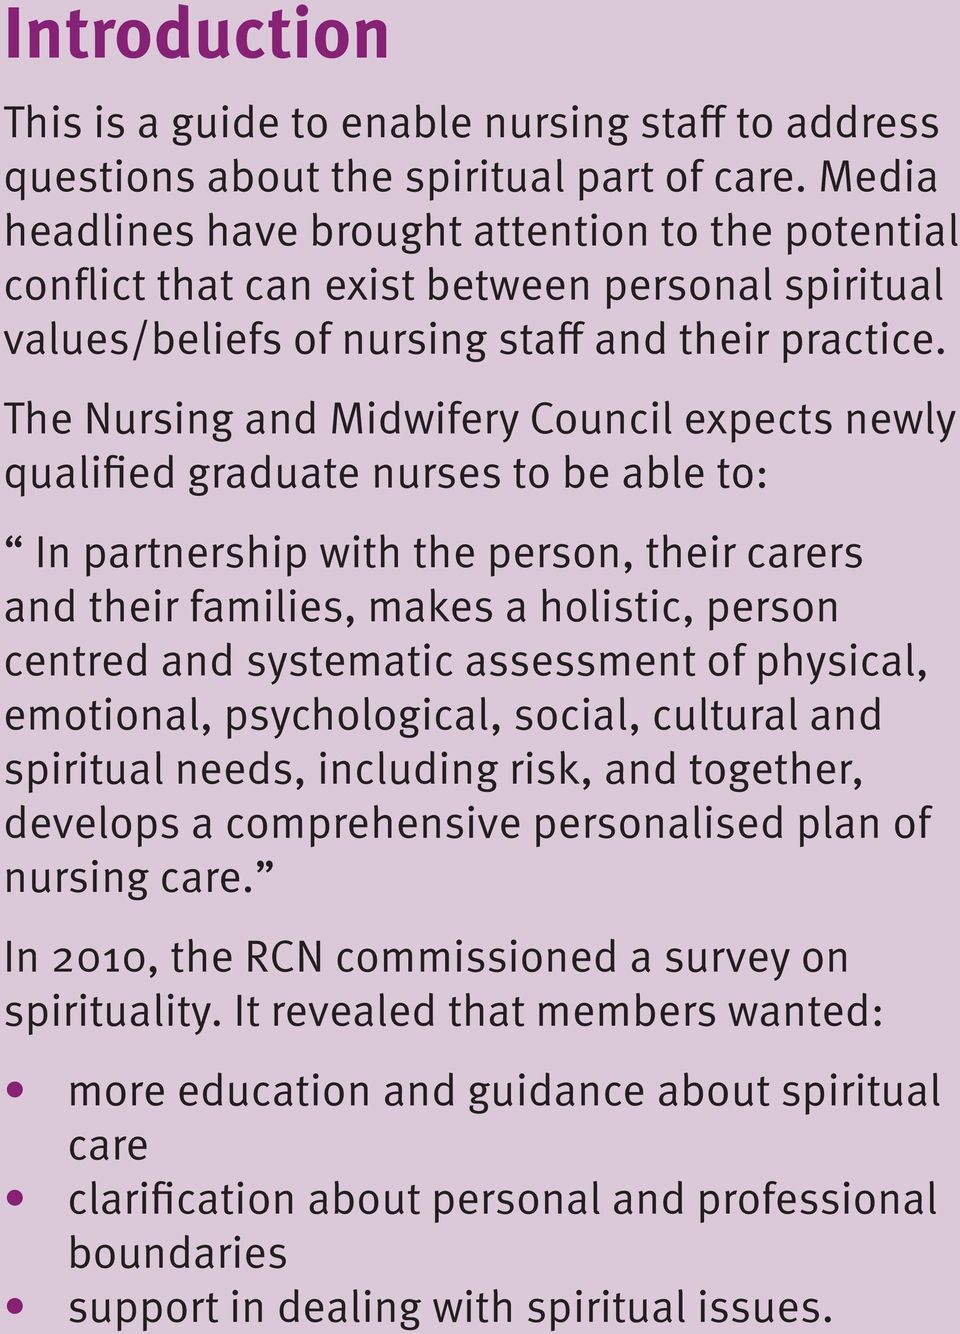 The Nursing and Midwifery Council expects newly qualified graduate nurses to be able to: In partnership with the person, their carers and their families, makes a holistic, person centred and